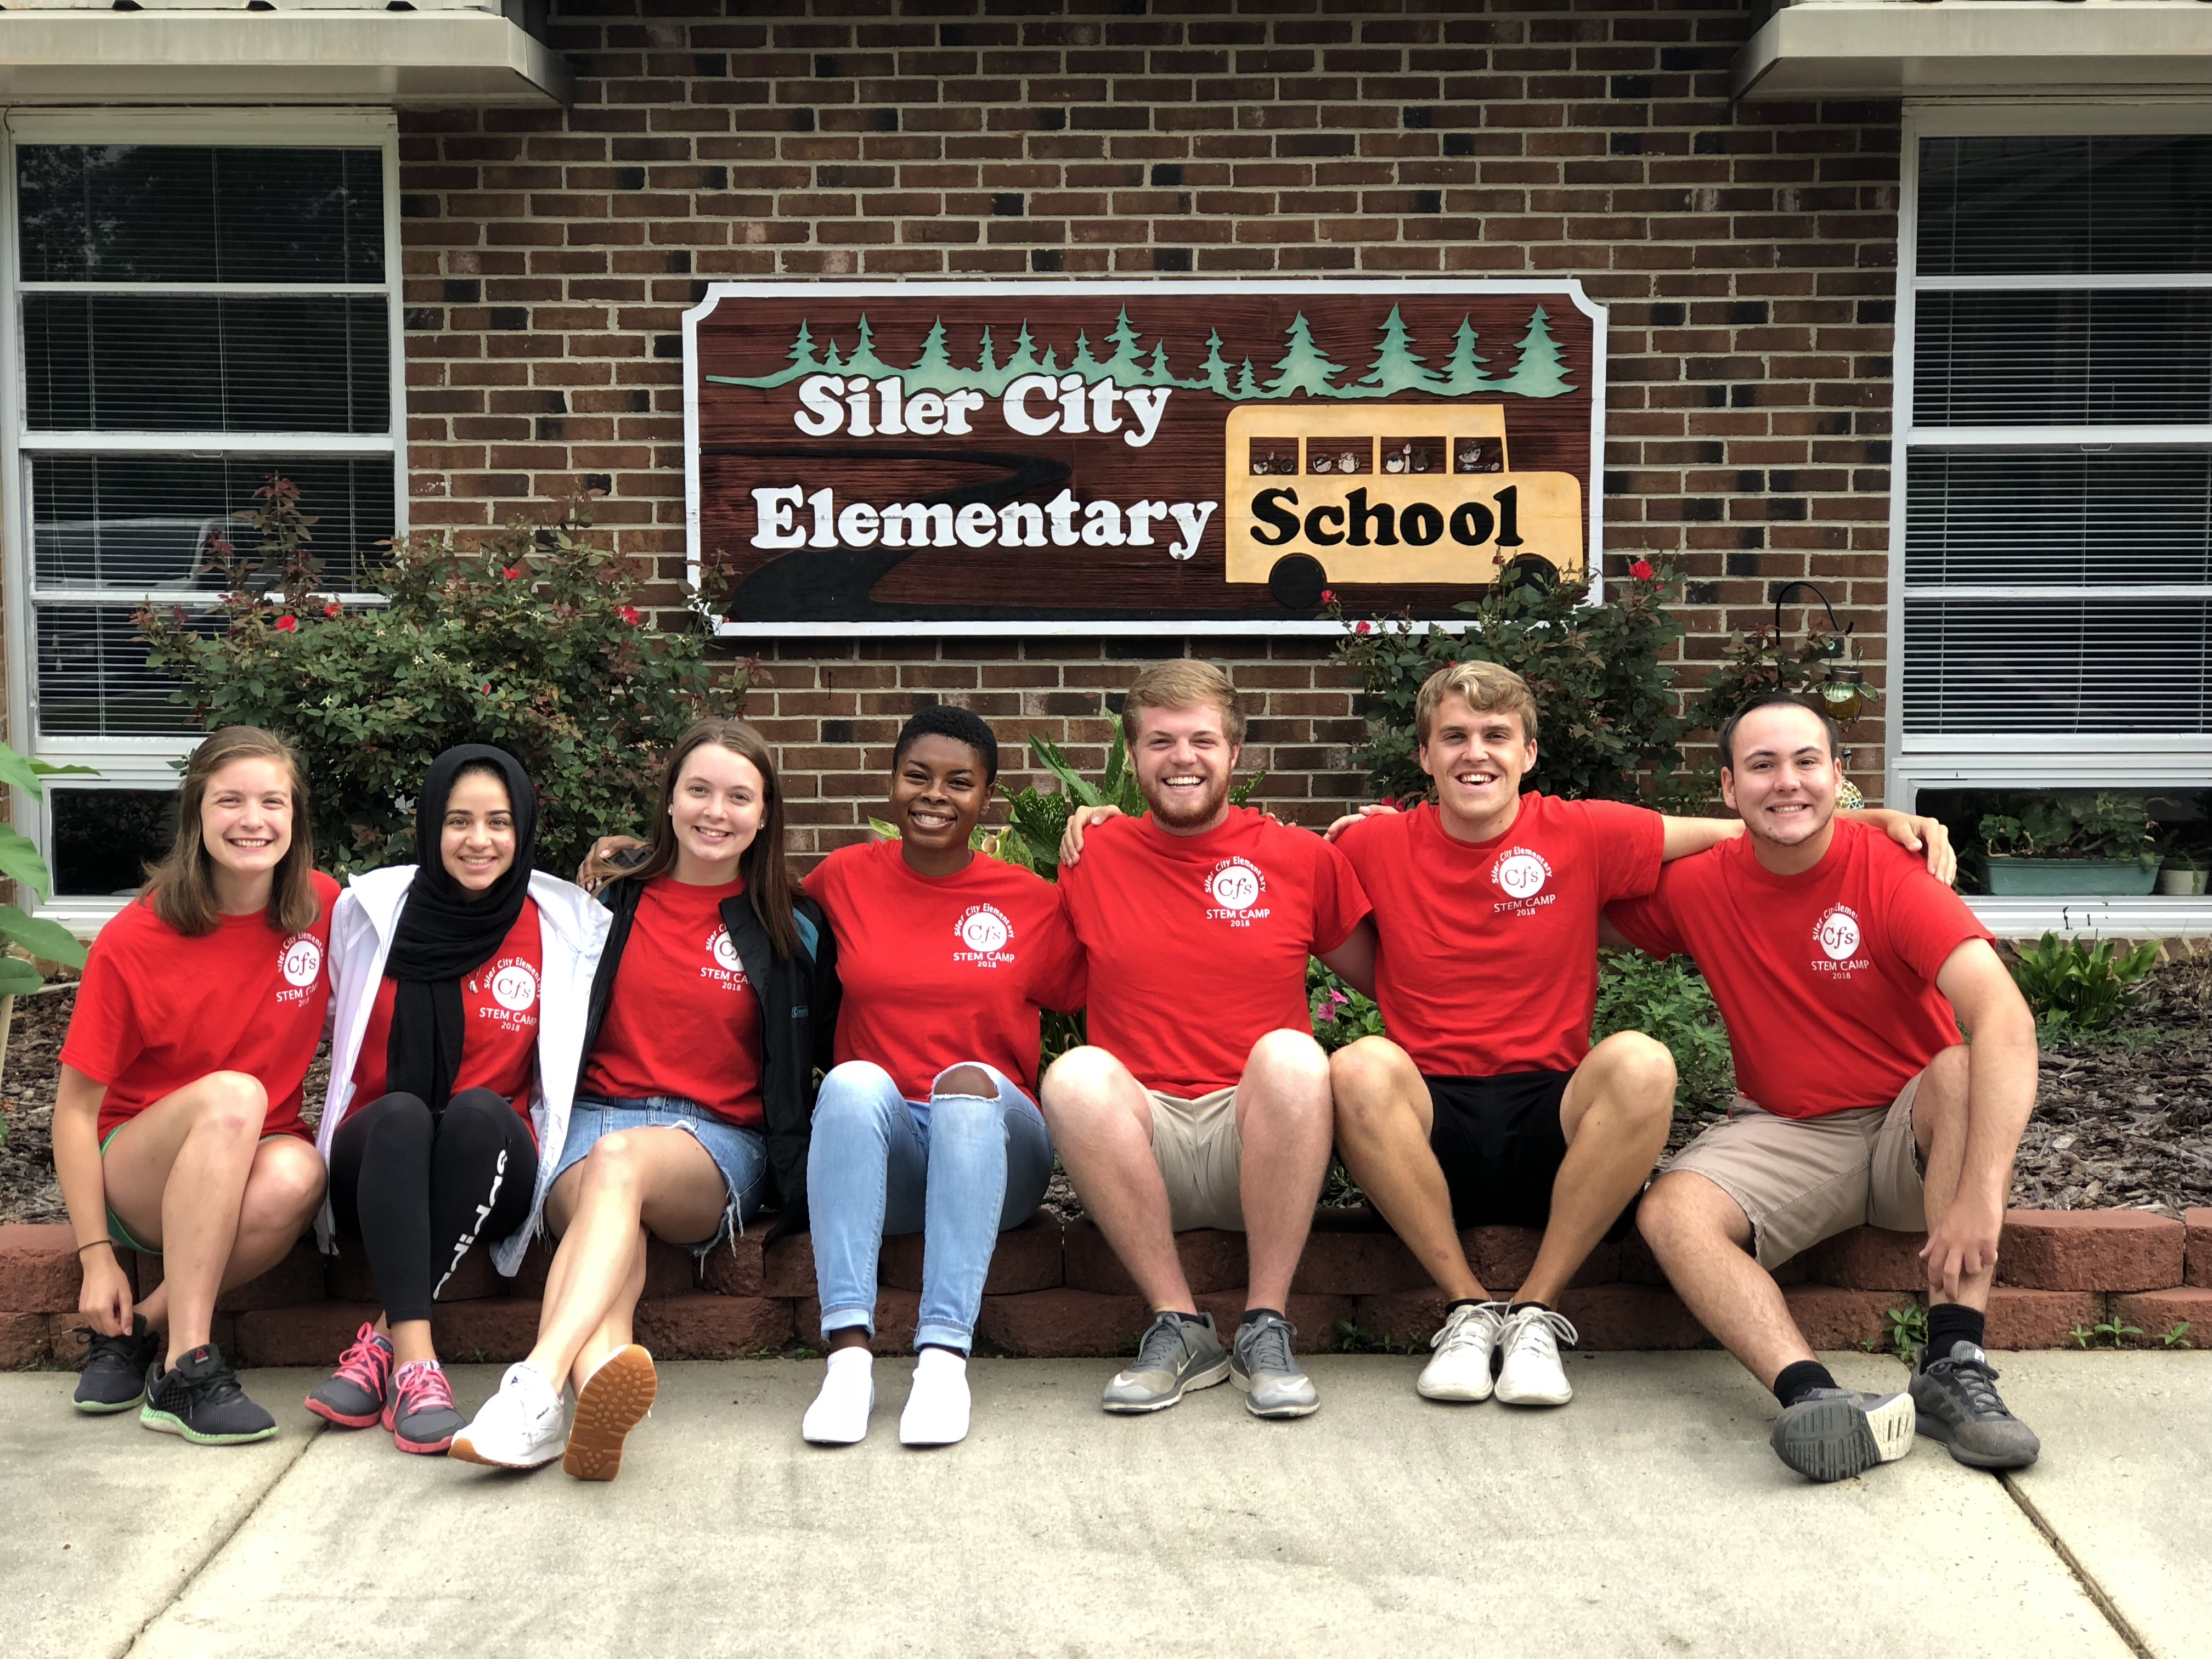 NC State University student counselors. all are wearing matching red shirts.